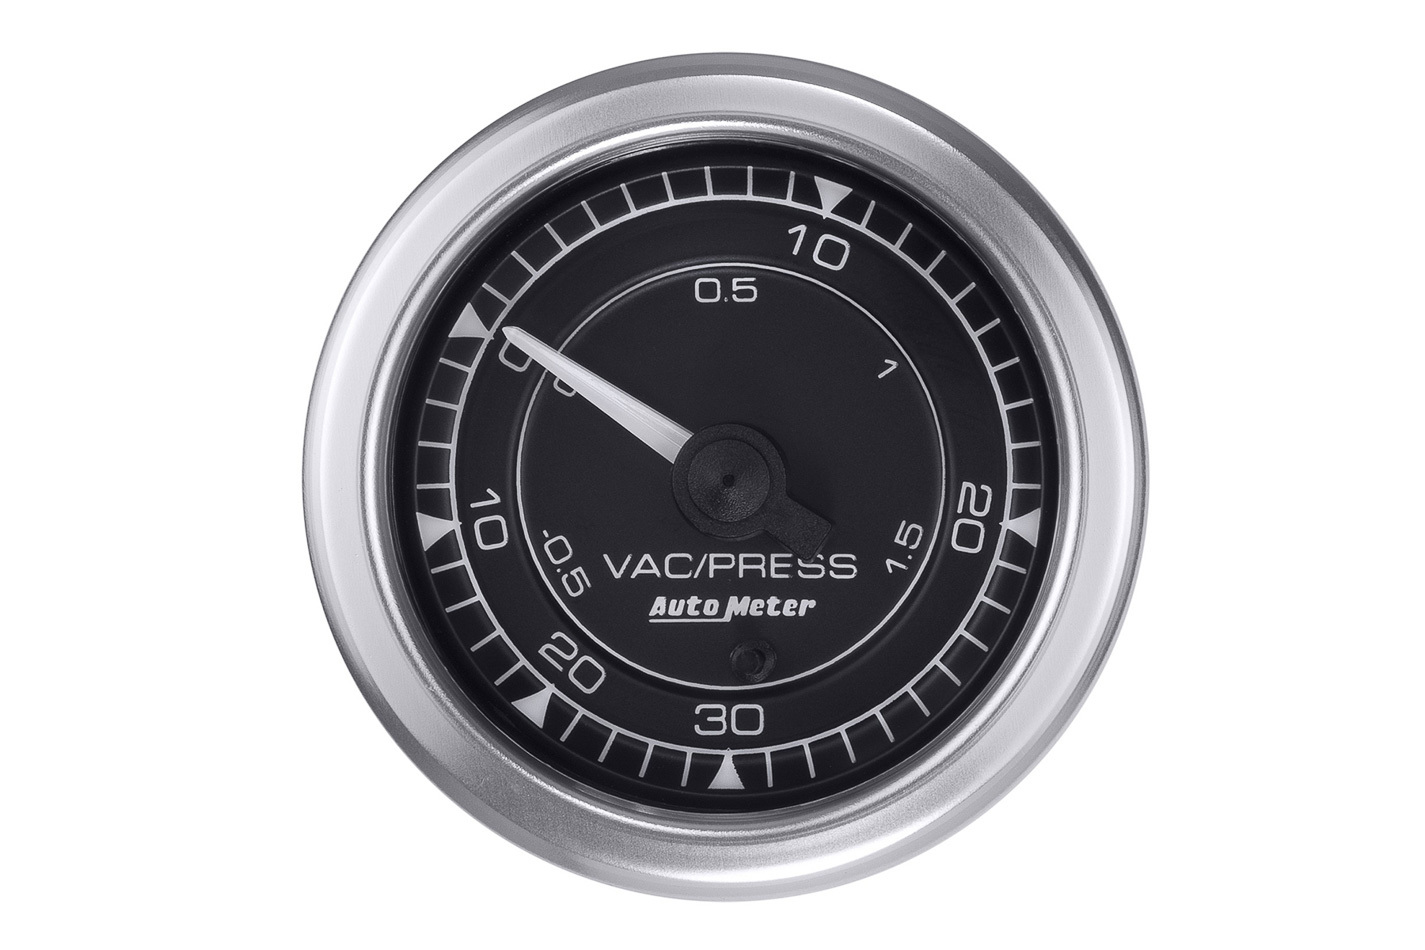 Auto Meter 8159 Boost/Vacuum Gauge, Chrono Series, 30 in HG-30 psi, Electric, Analog, Full Sweep, 2-1/16 in Diameter, Fittings/Harness/Hardware/MAP Sensor Included, Black Face, Each